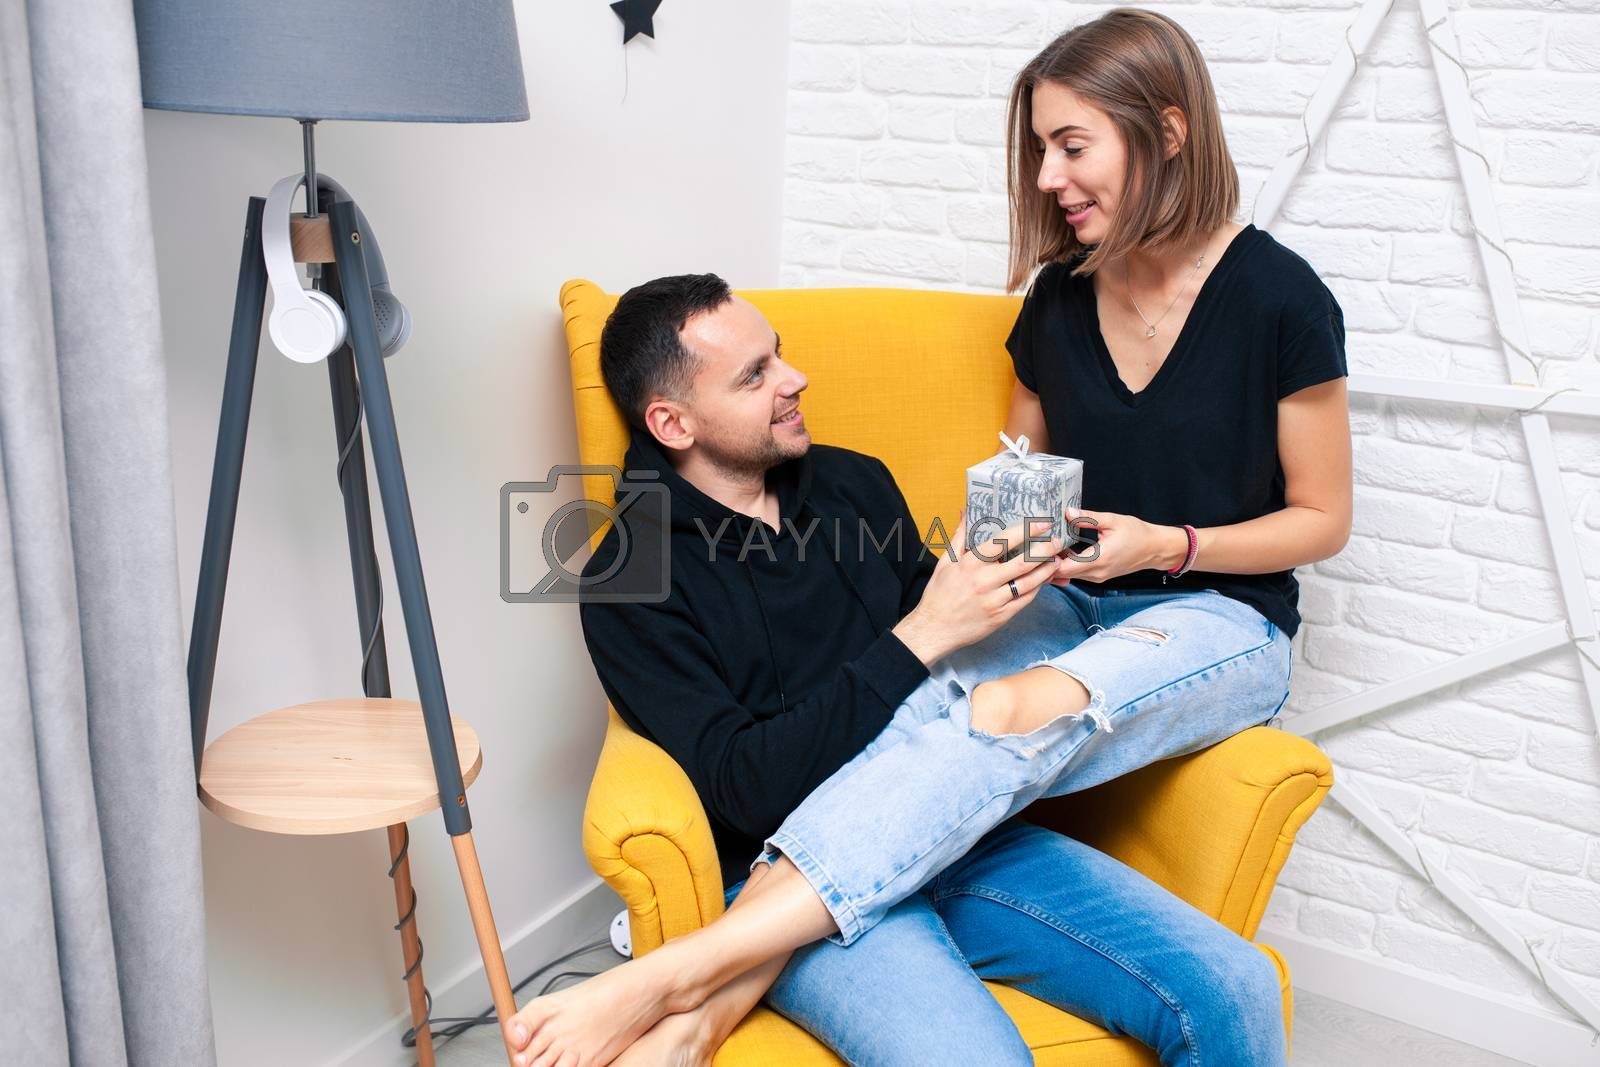 Portrait of couple young in a cozy room. A man sits on a yellow chair. A woman sits on the lap of a man and holds a gift Christmas family holidays. Modern style interior.